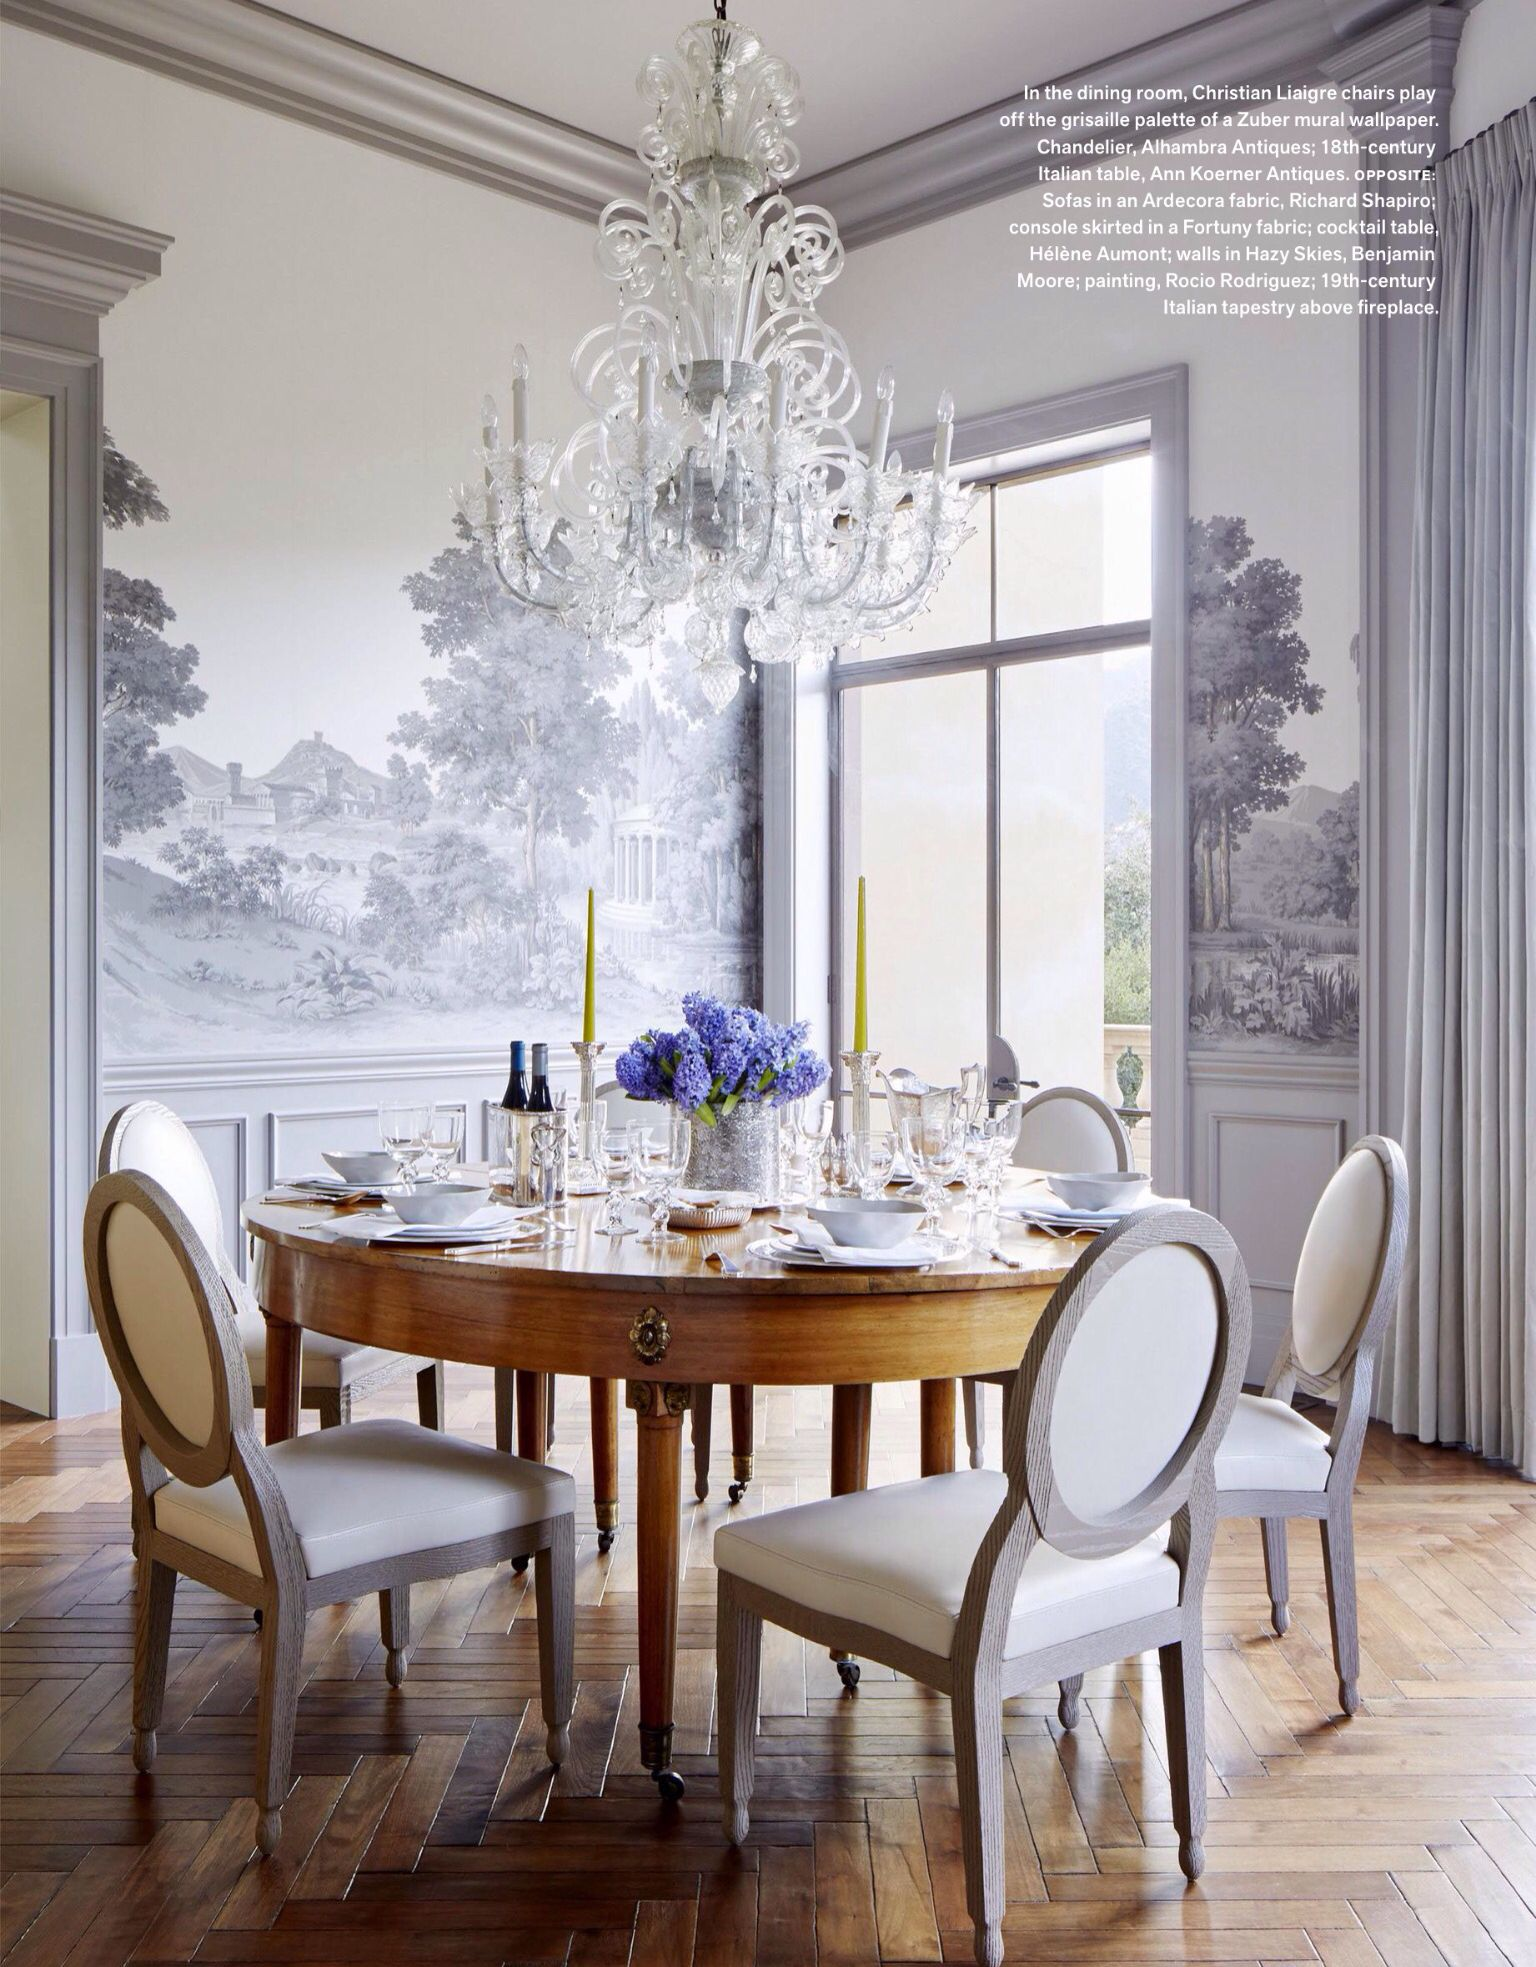 scenic wallpaper Dining room wallpaper